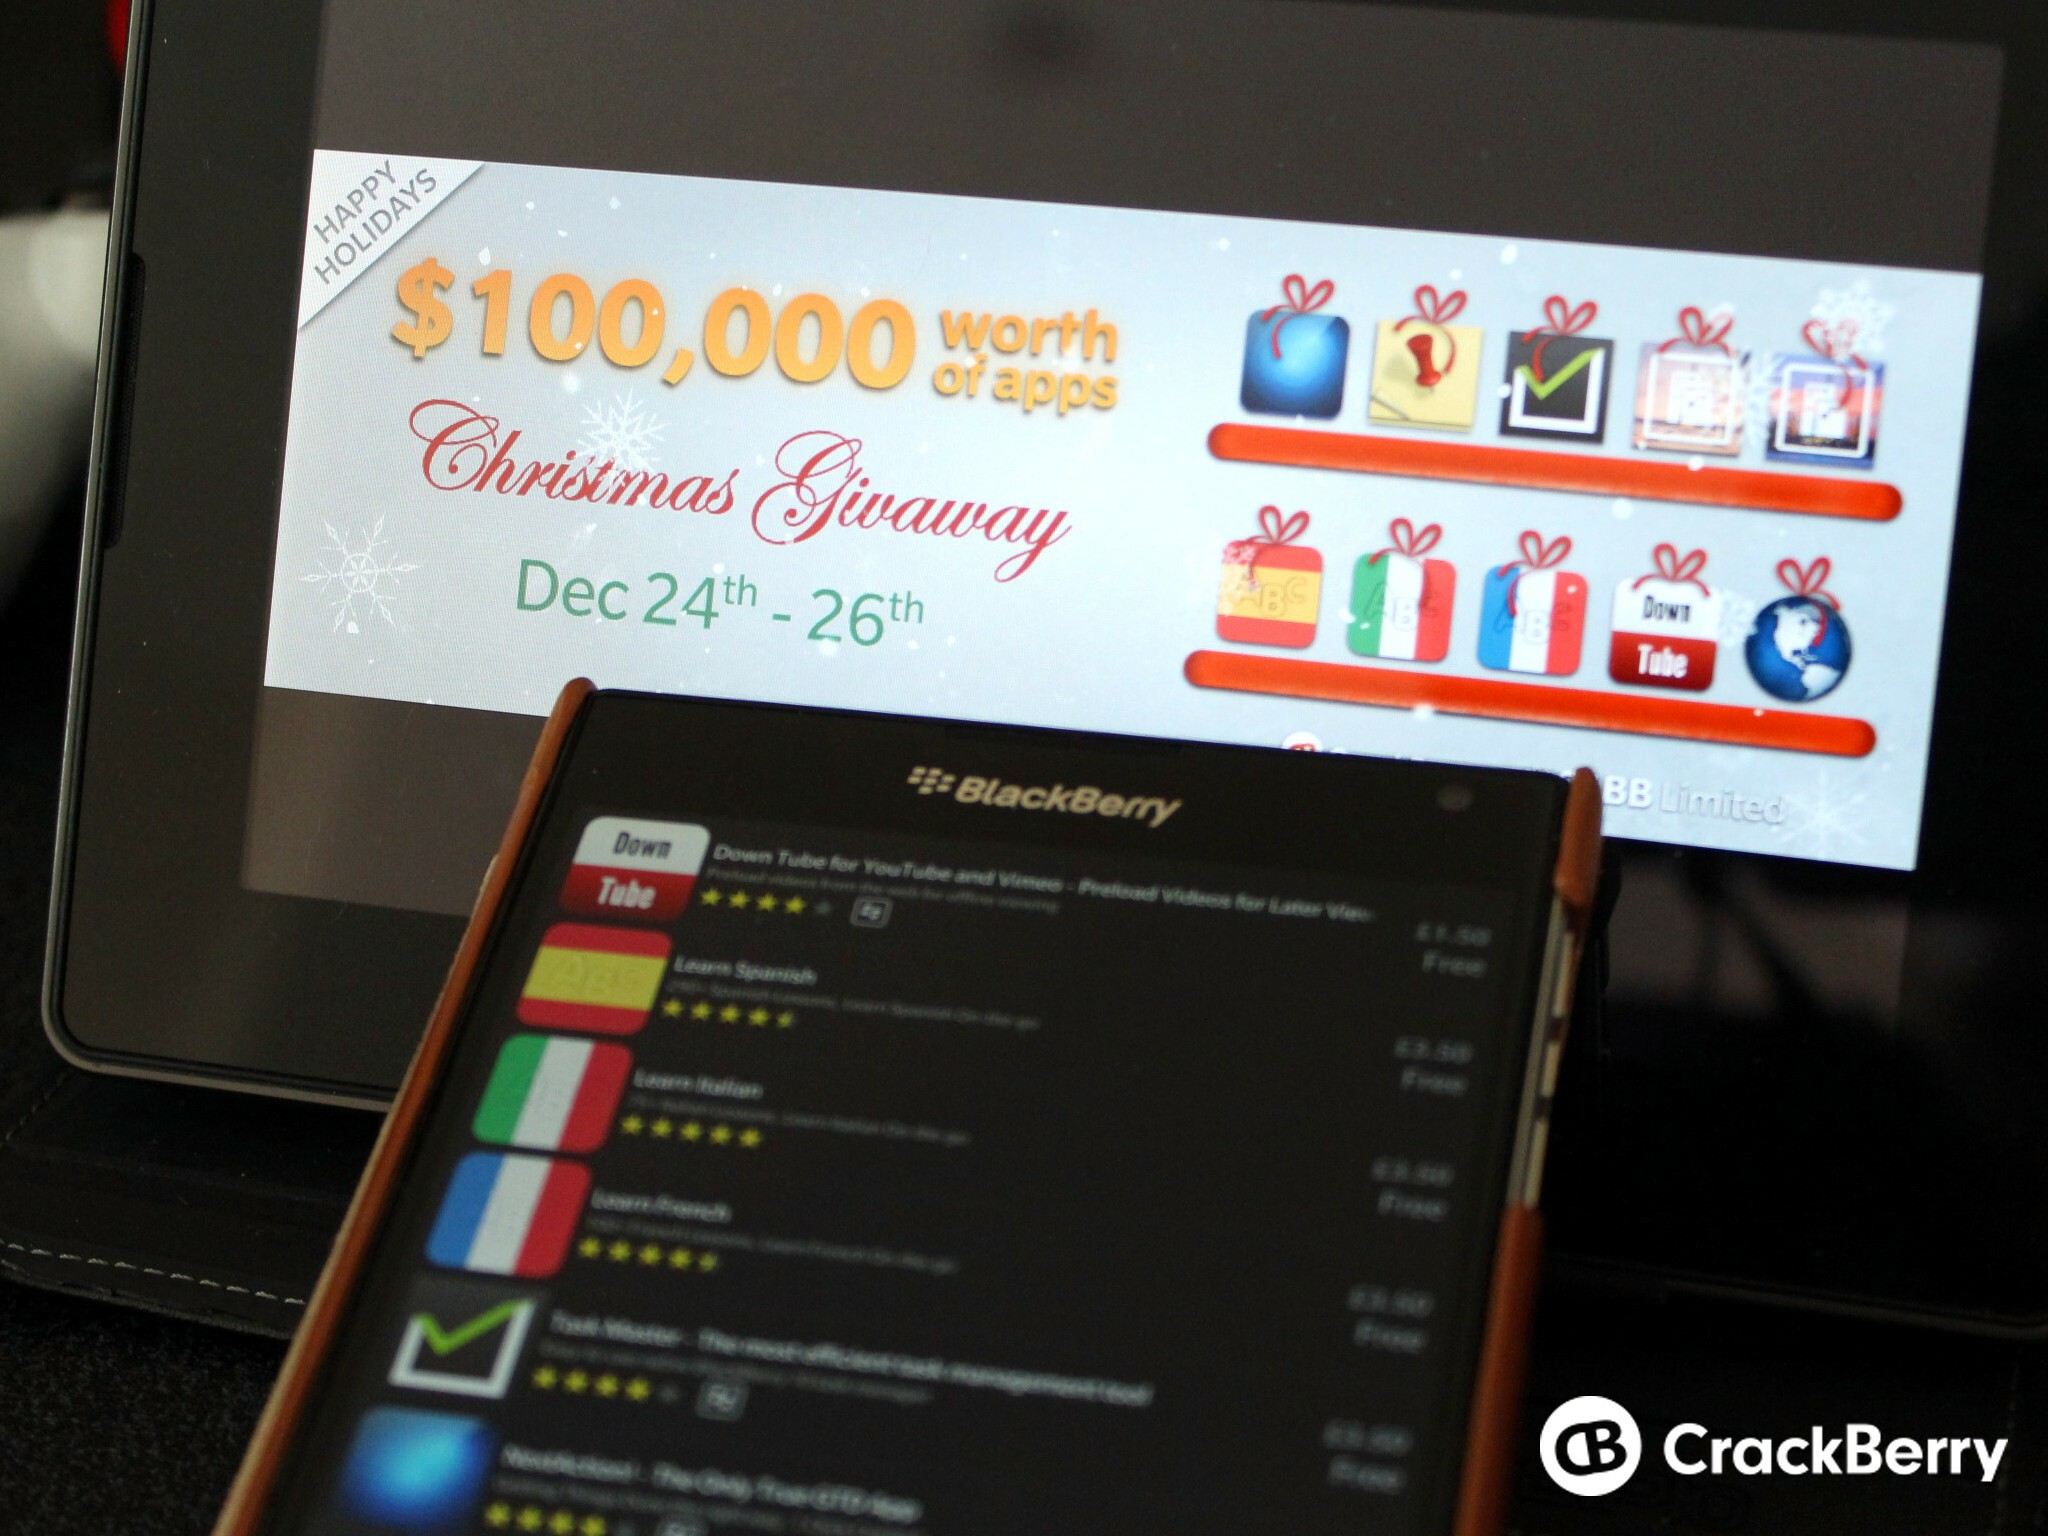 Get yourself some free apps with the S4BB Christmas giveaway